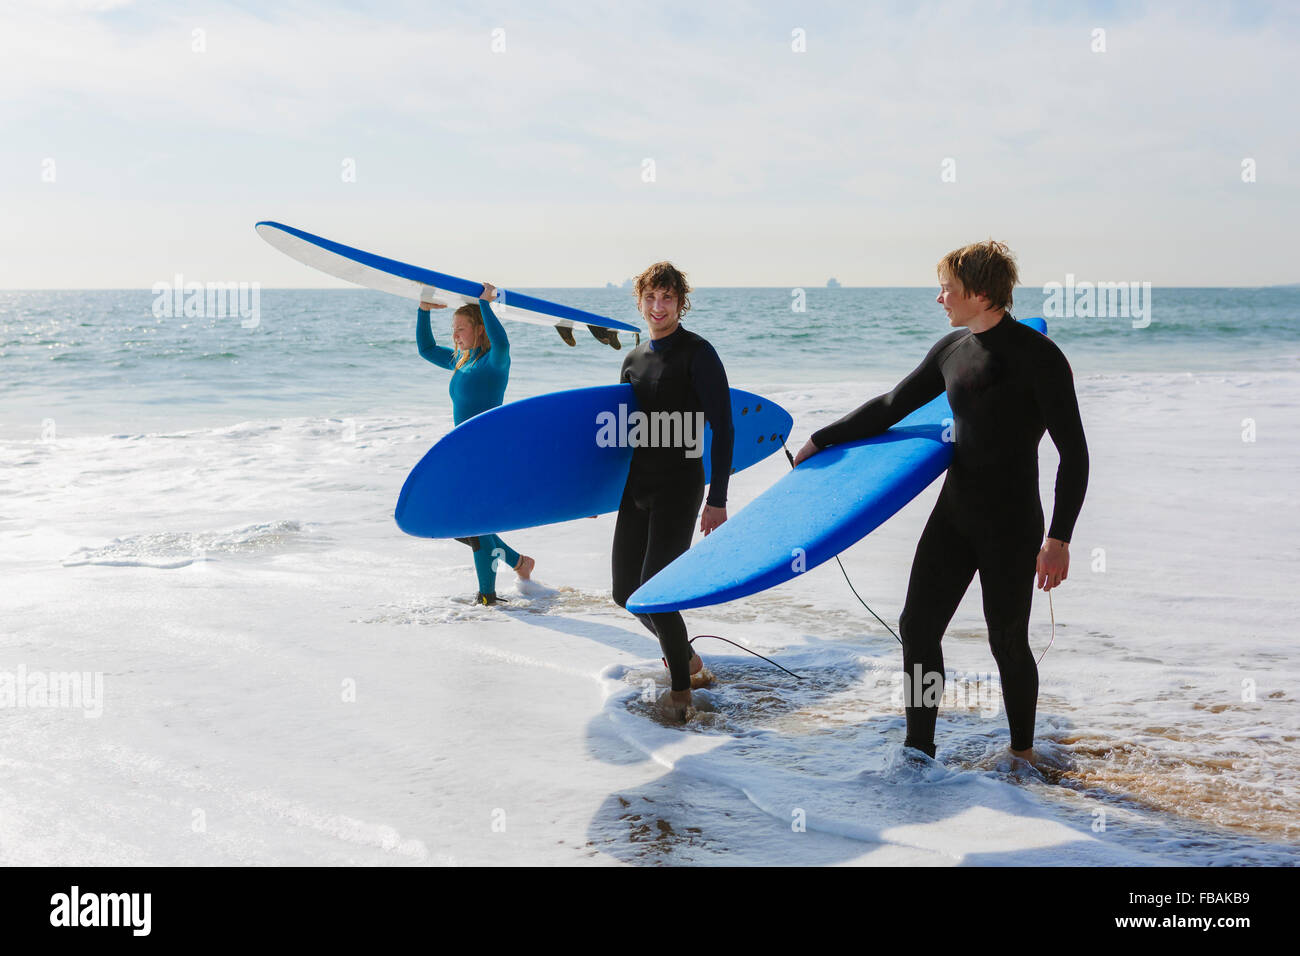 Portugal, Lisbon, Three people carrying surfboards on beach - Stock Image